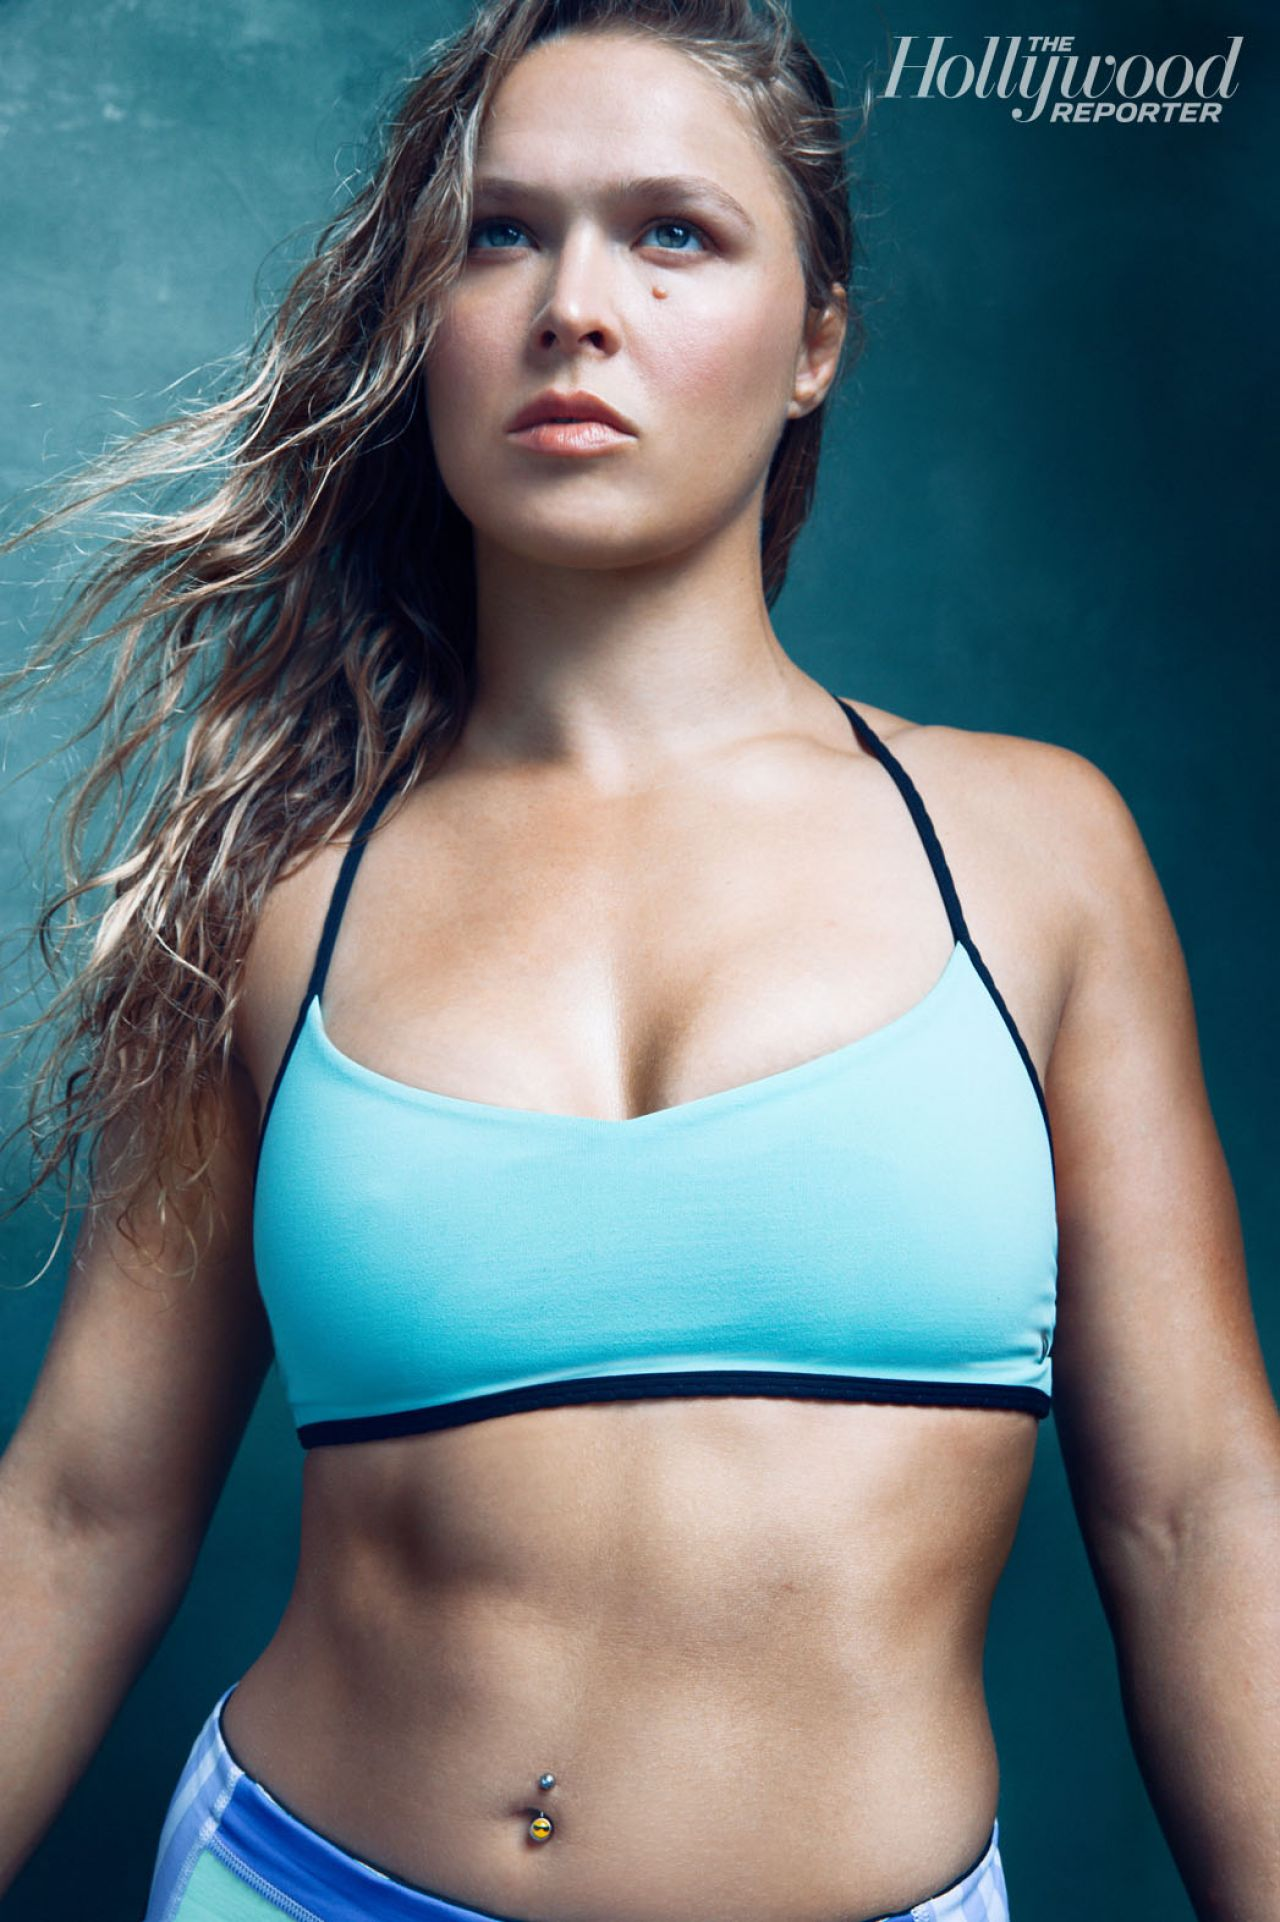 Ronda Rousey - The Hollywood Reporter Magazine Sports Issue 2014